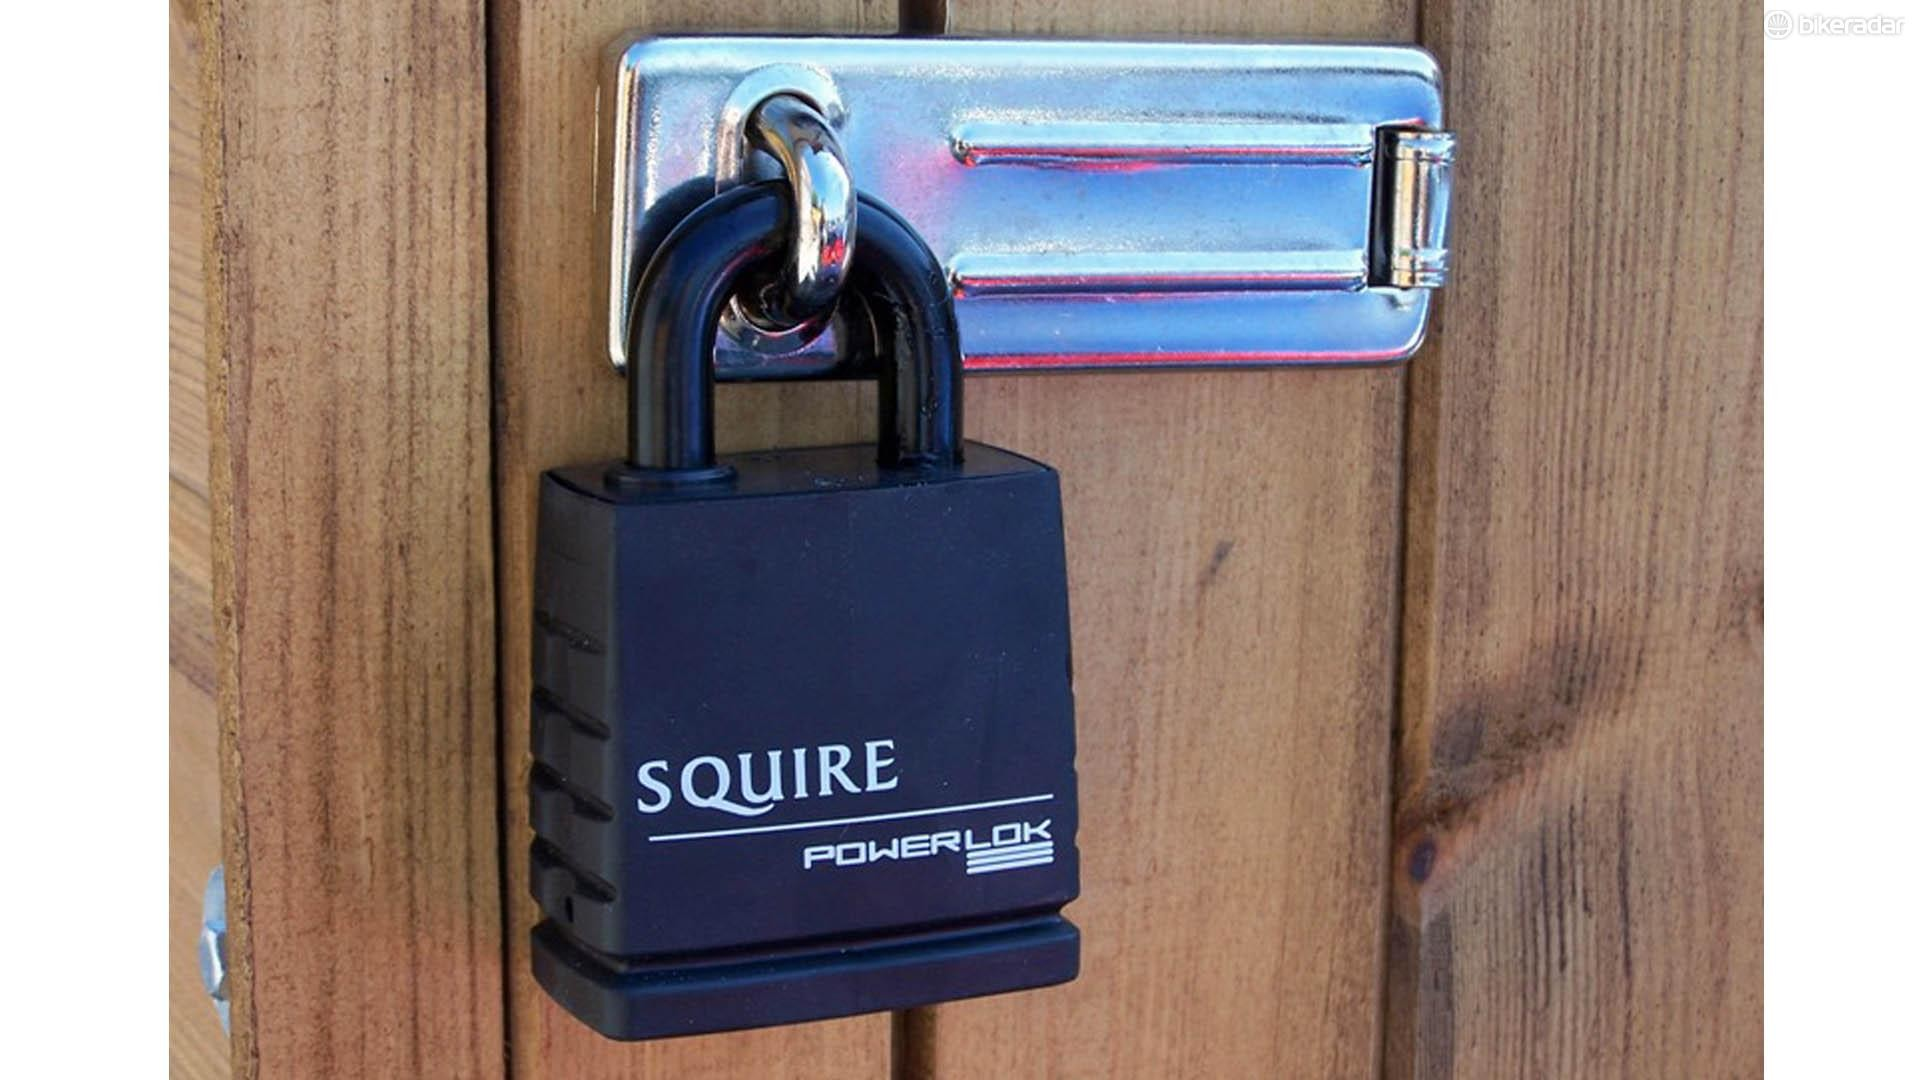 Don't go overboard with external security. The more locks you have fitted, the more obvious it is that there's something inside the shed that's worth protecting